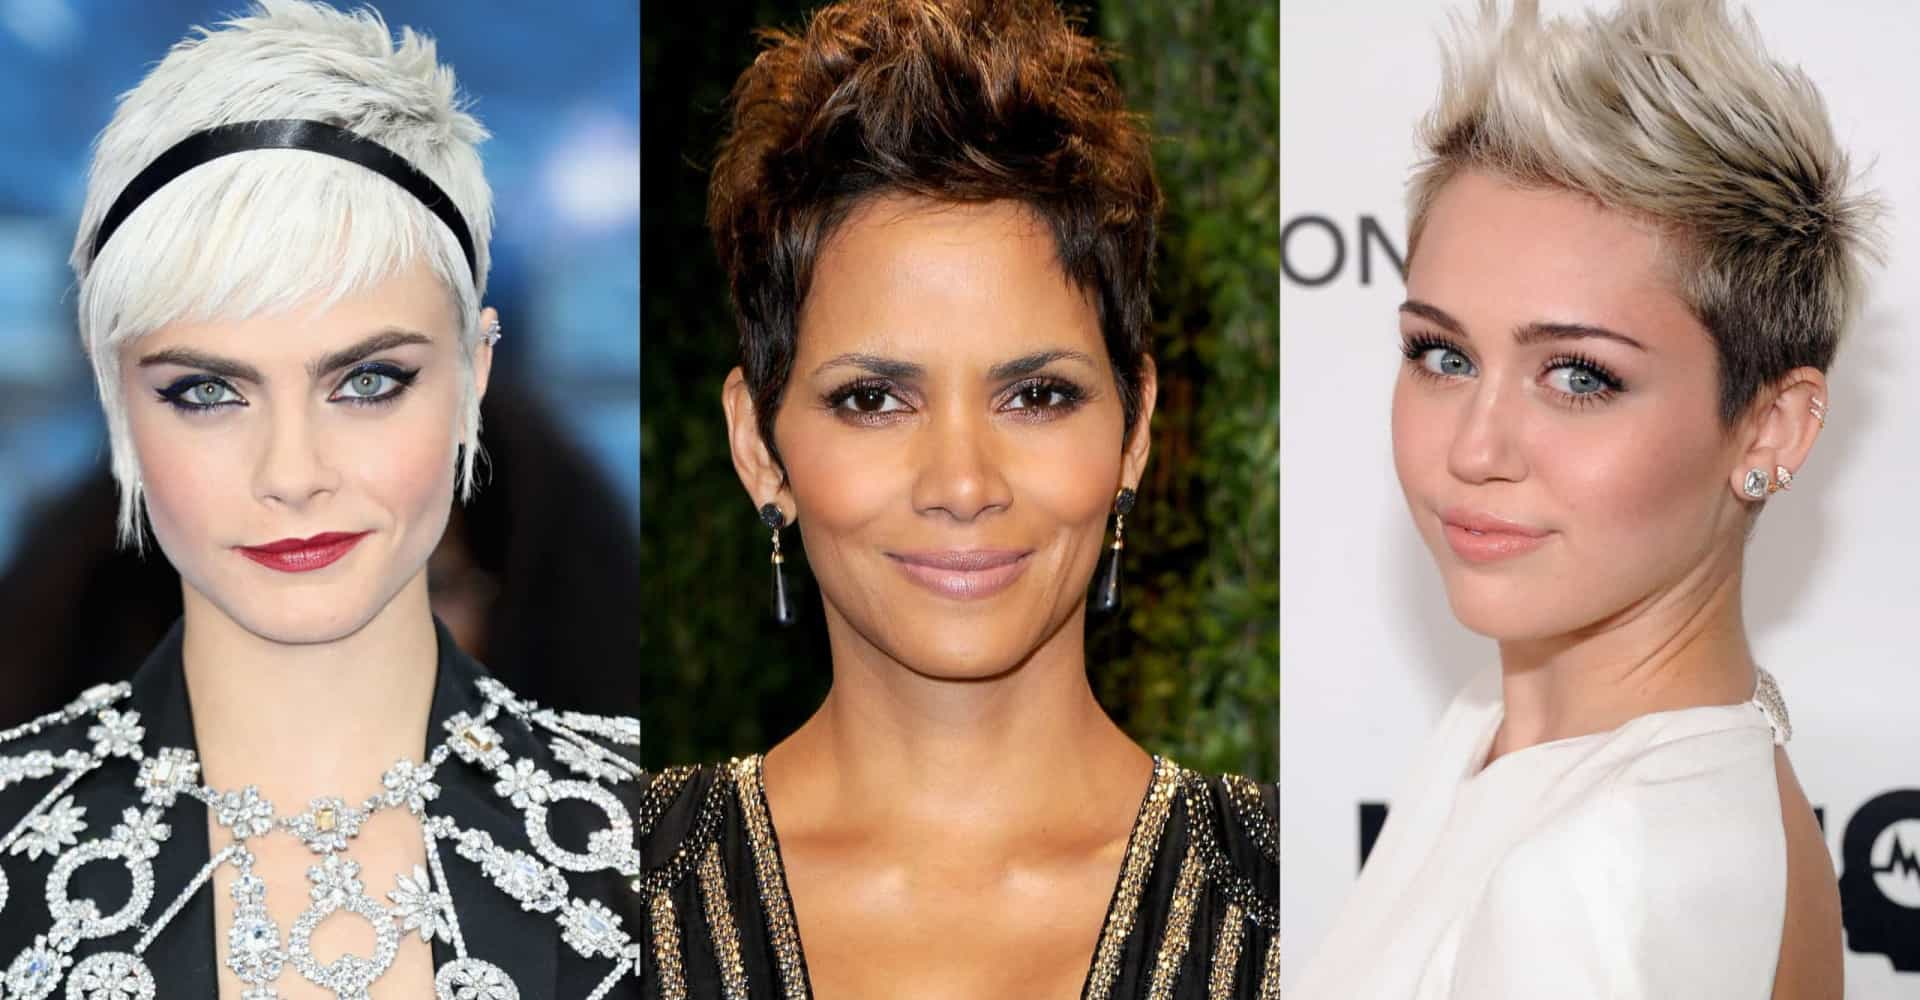 Celebs who rocked the pixie cut